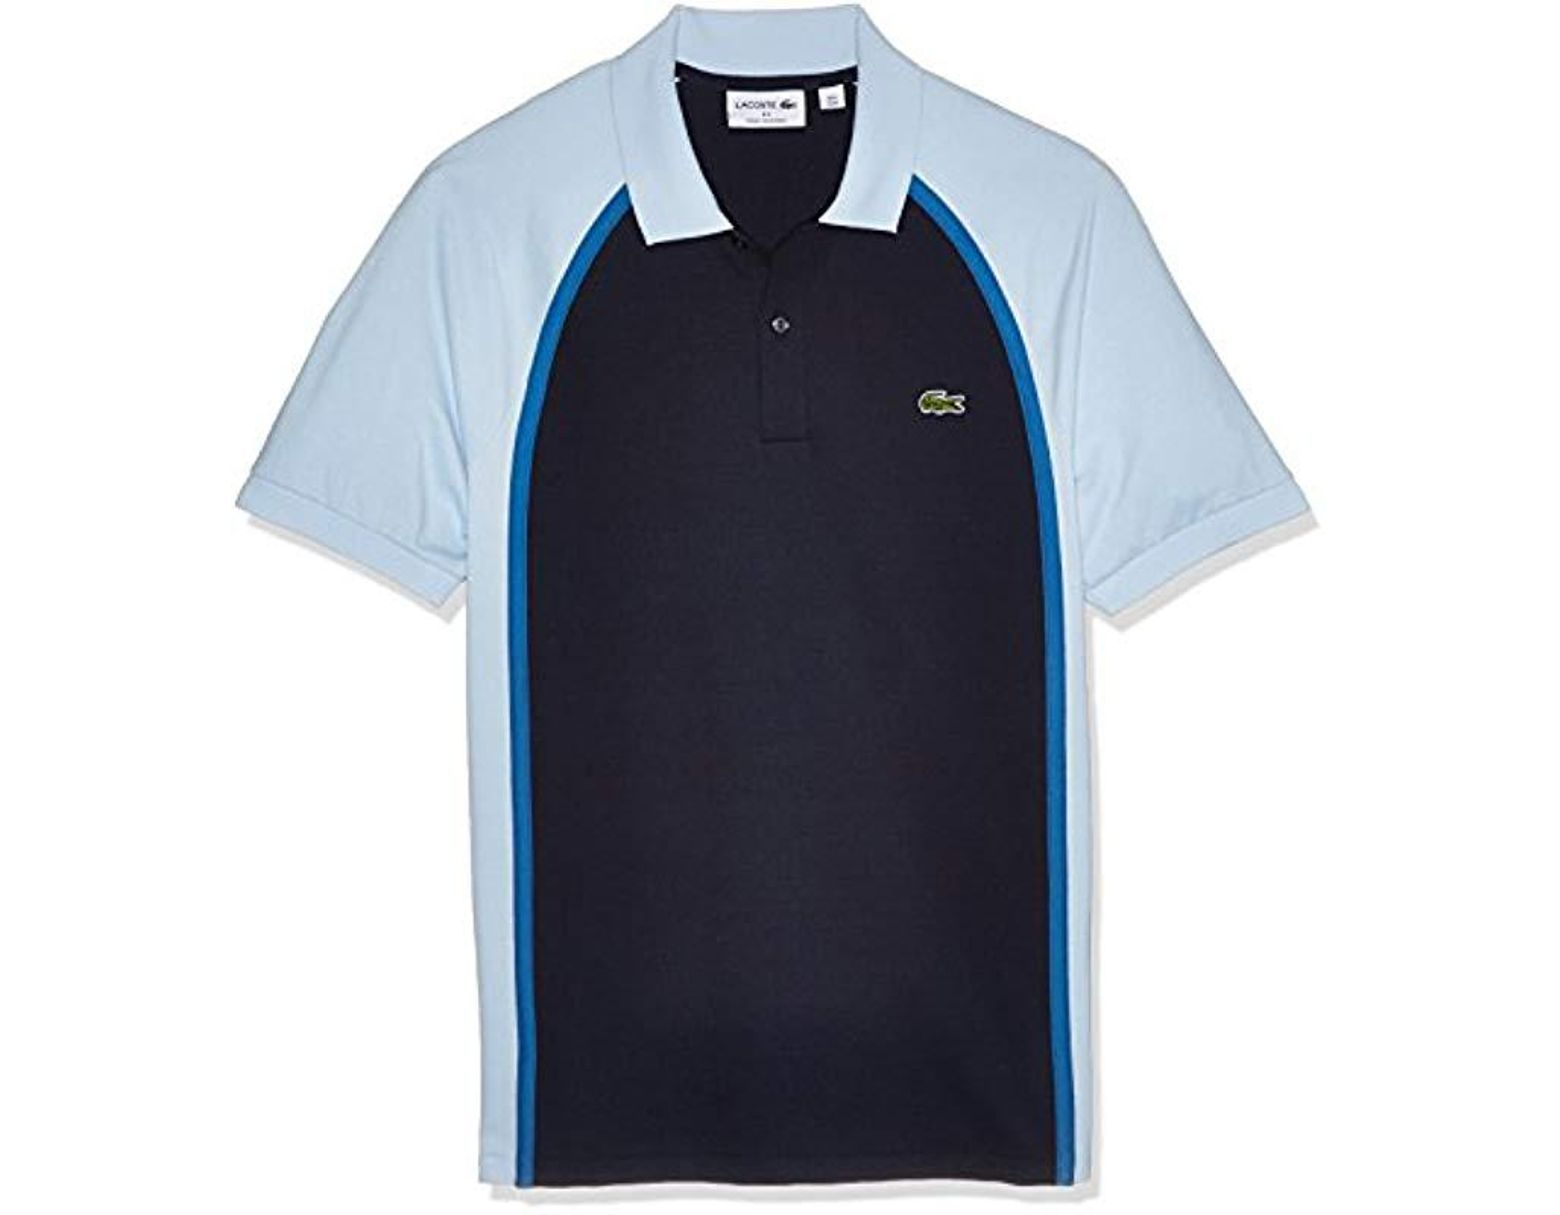 7400da8202 Lacoste Short Sleeve Made In France Pique Reg Fit Polo, Ph3210 in Blue for  Men - Save 23% - Lyst